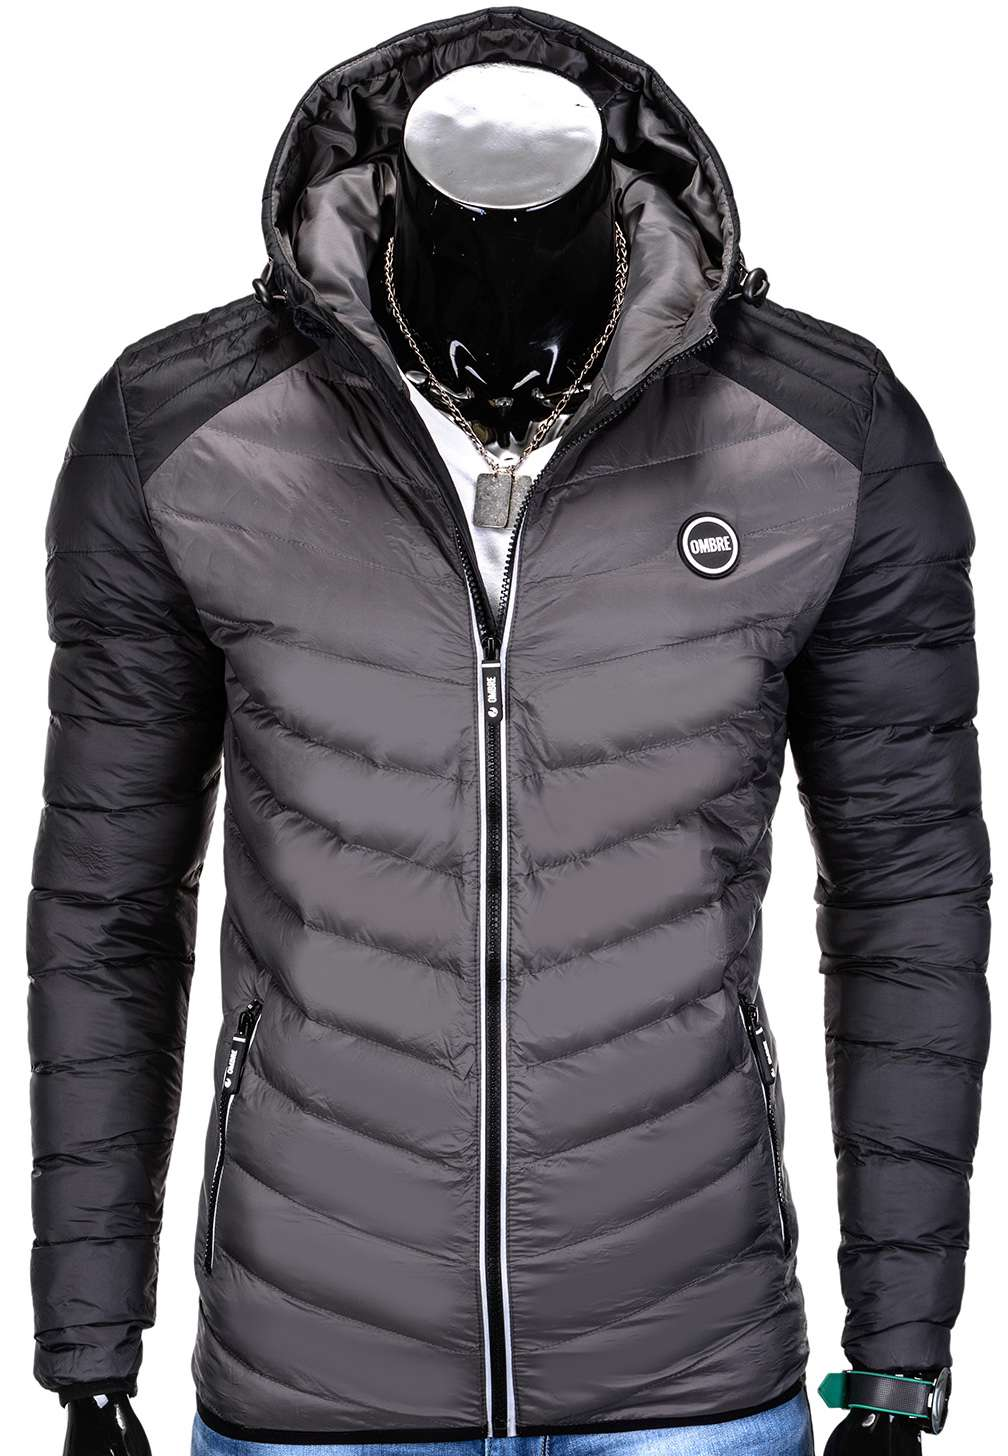 new product 5f27c c963c GIACCA INVERNALE UOMO OMBRE C293